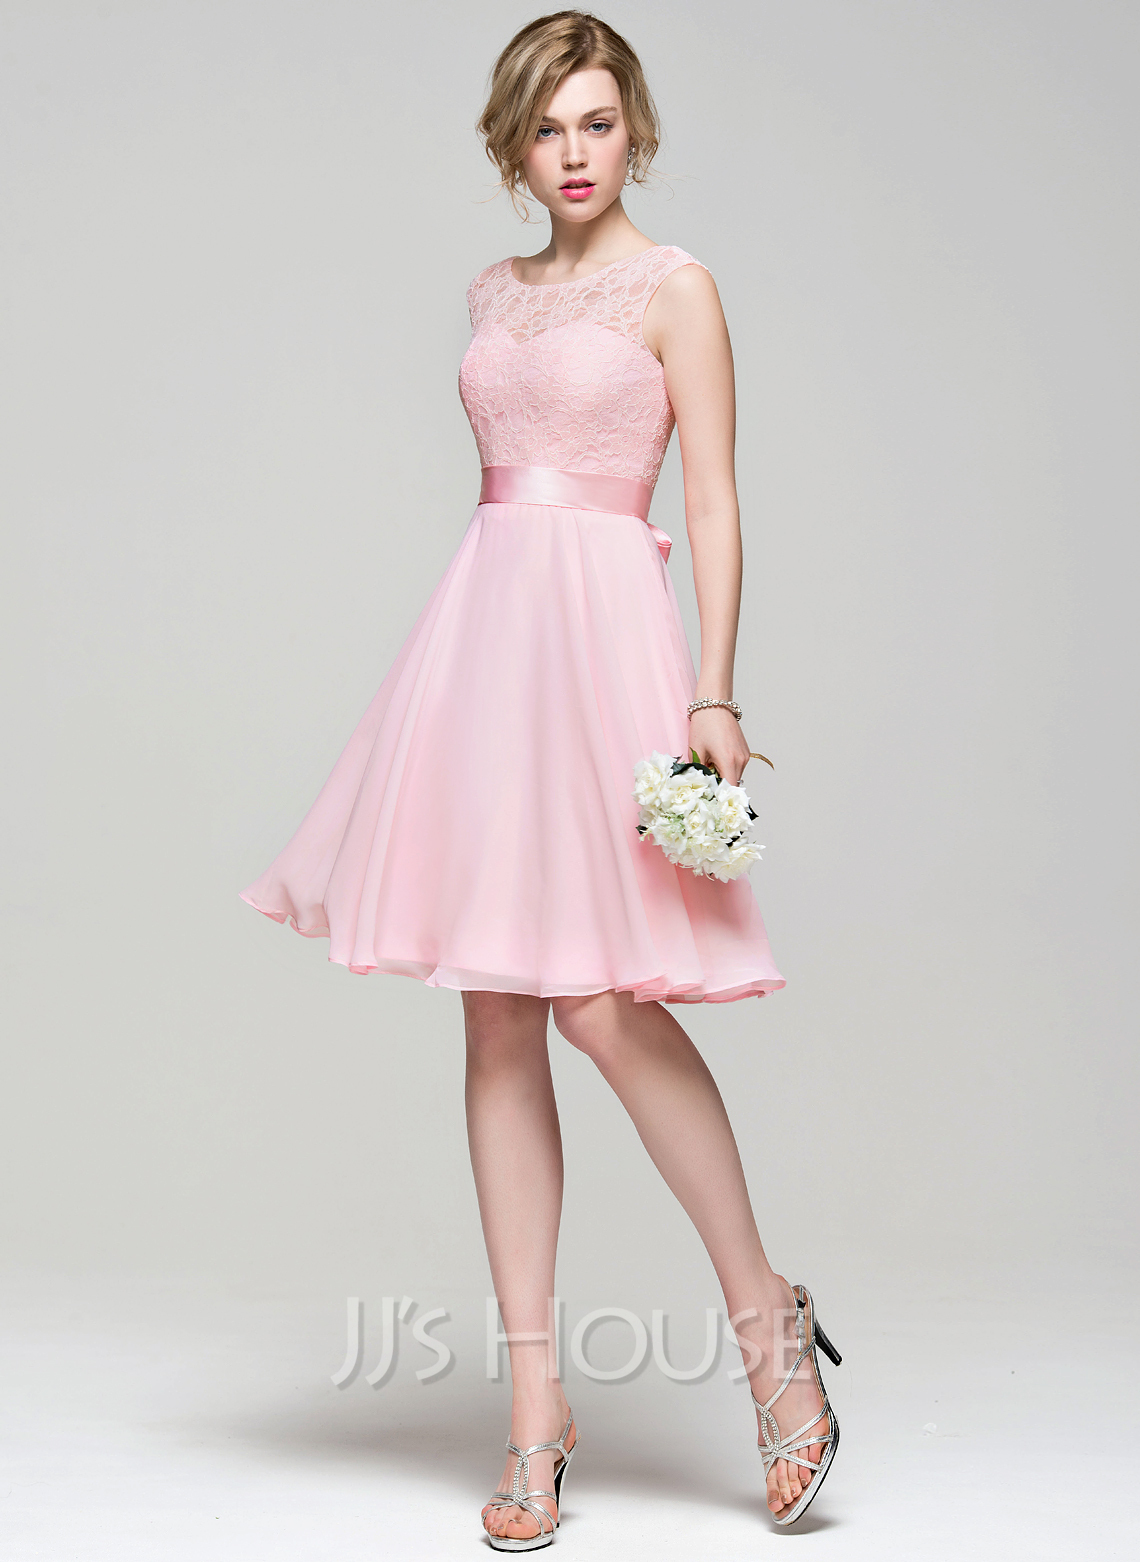 bd624391fb A-Line Princess Scoop Neck Knee-Length Chiffon Lace Bridesmaid Dress With  Bow. Loading zoom